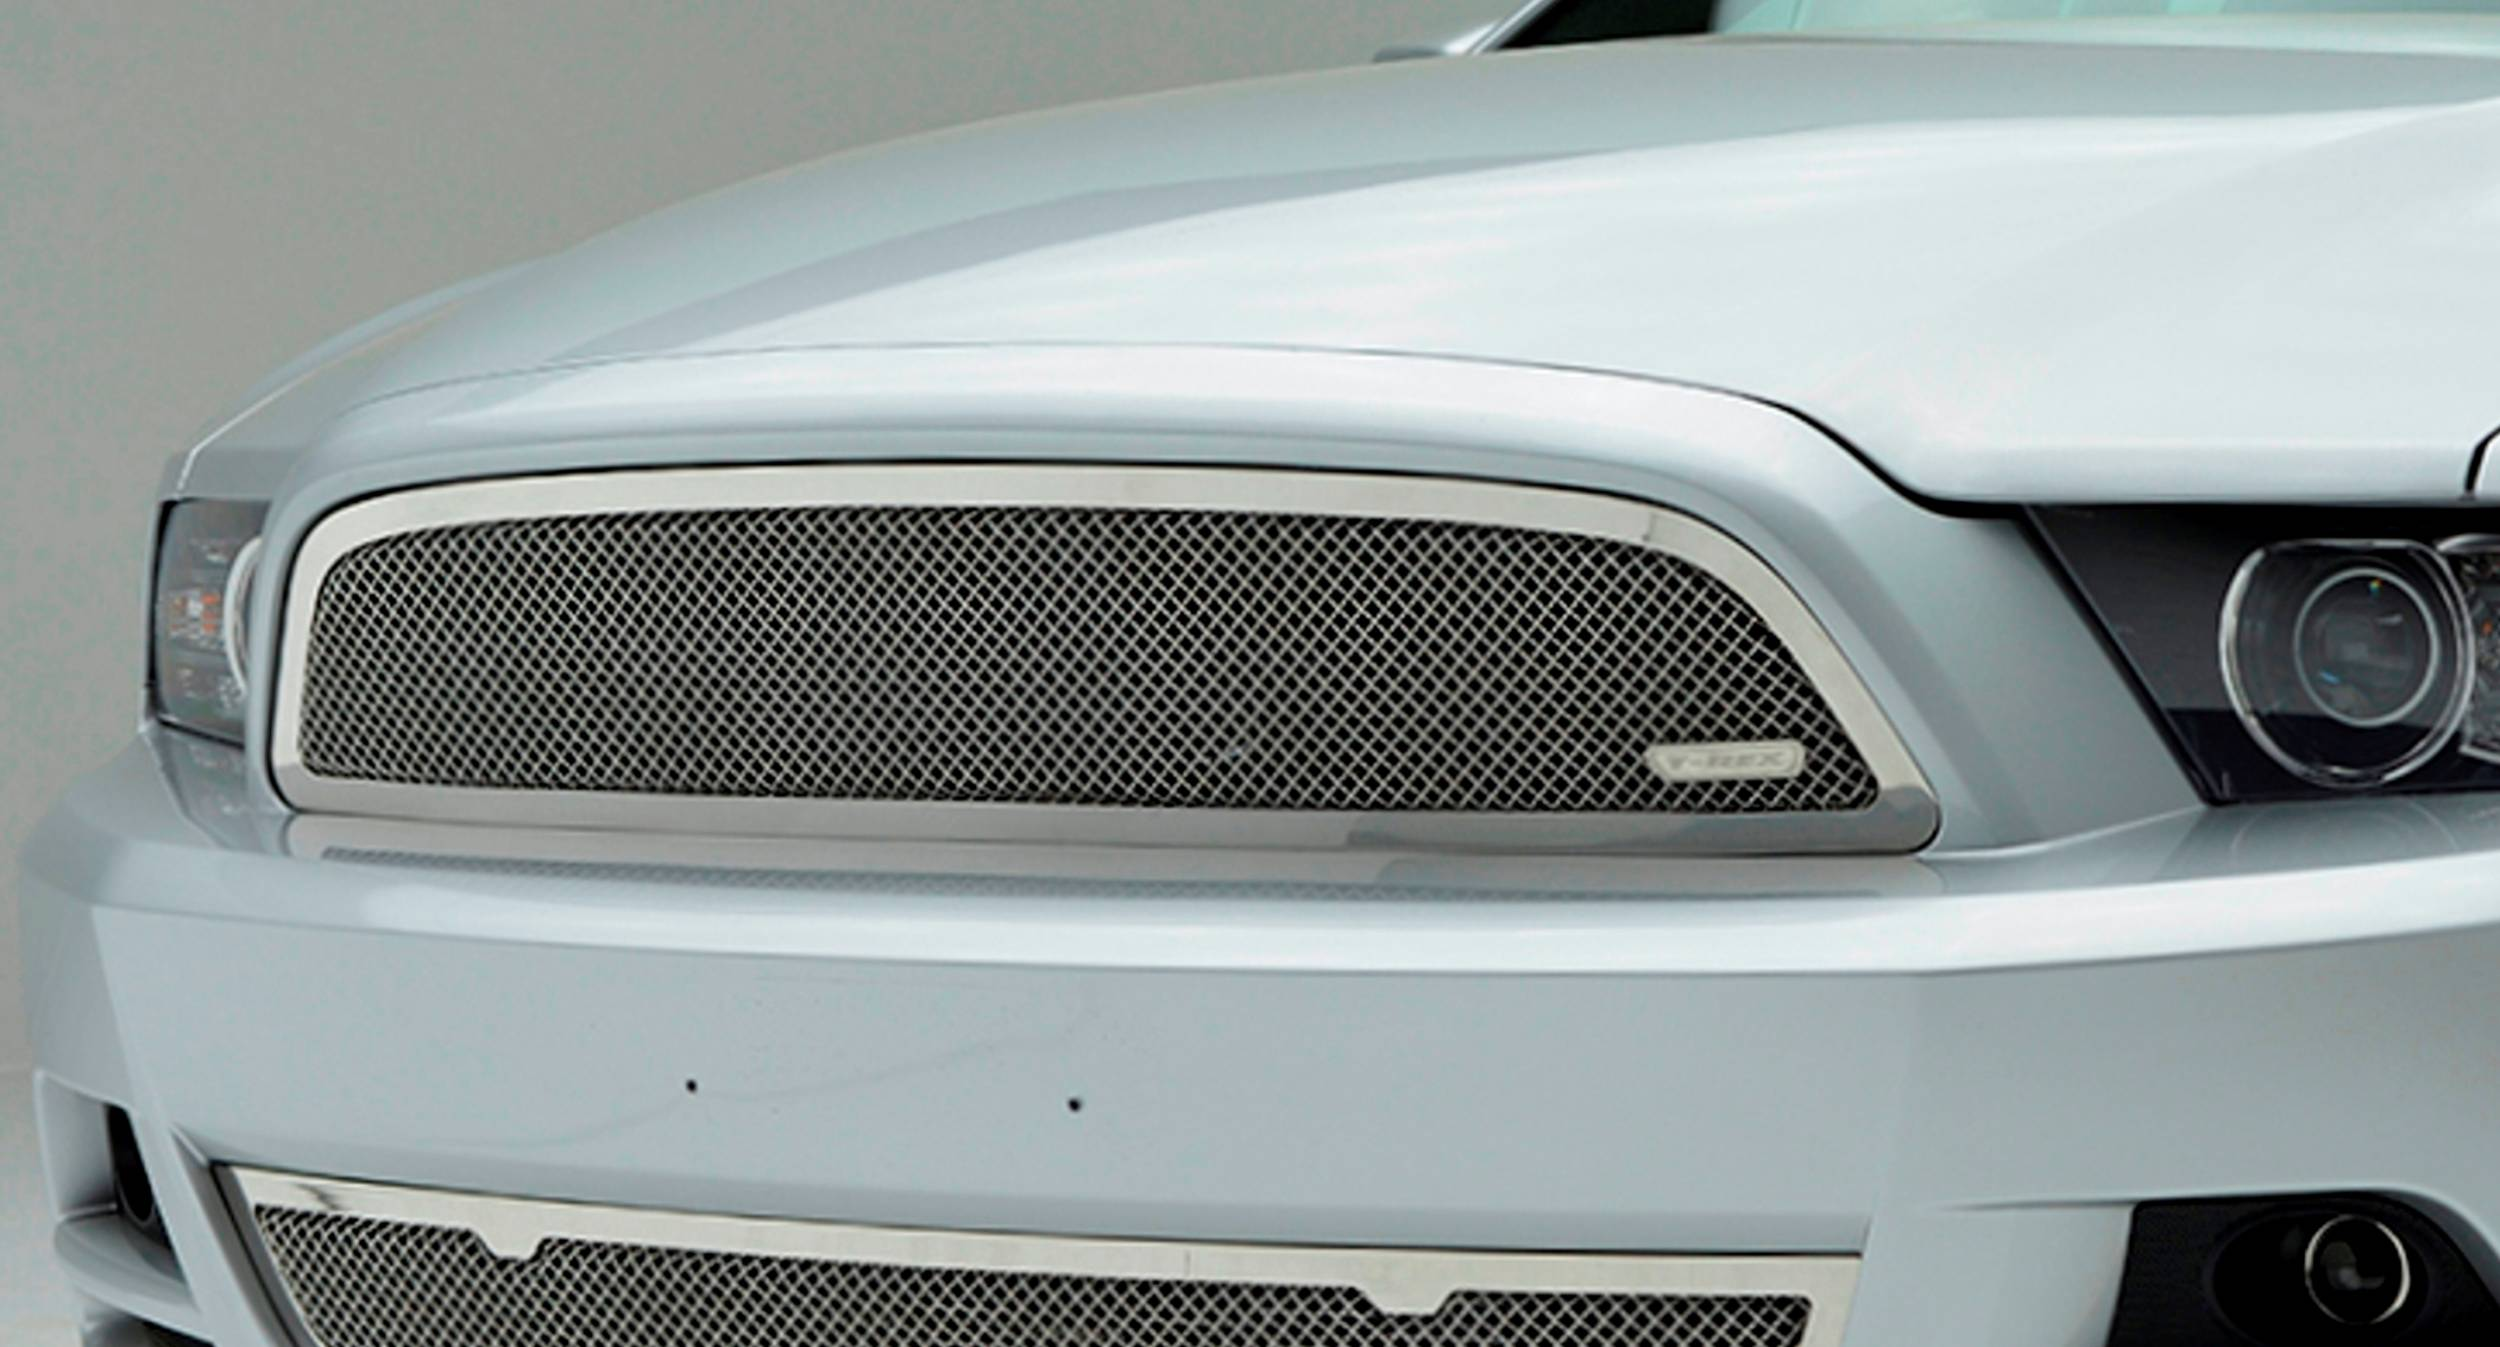 Ford Mustang V6 Coupe, Upper Class, Formed Mesh Grille, Main, No Logo cutout, Overlay, 1 Pc, Polished Stainless Steel